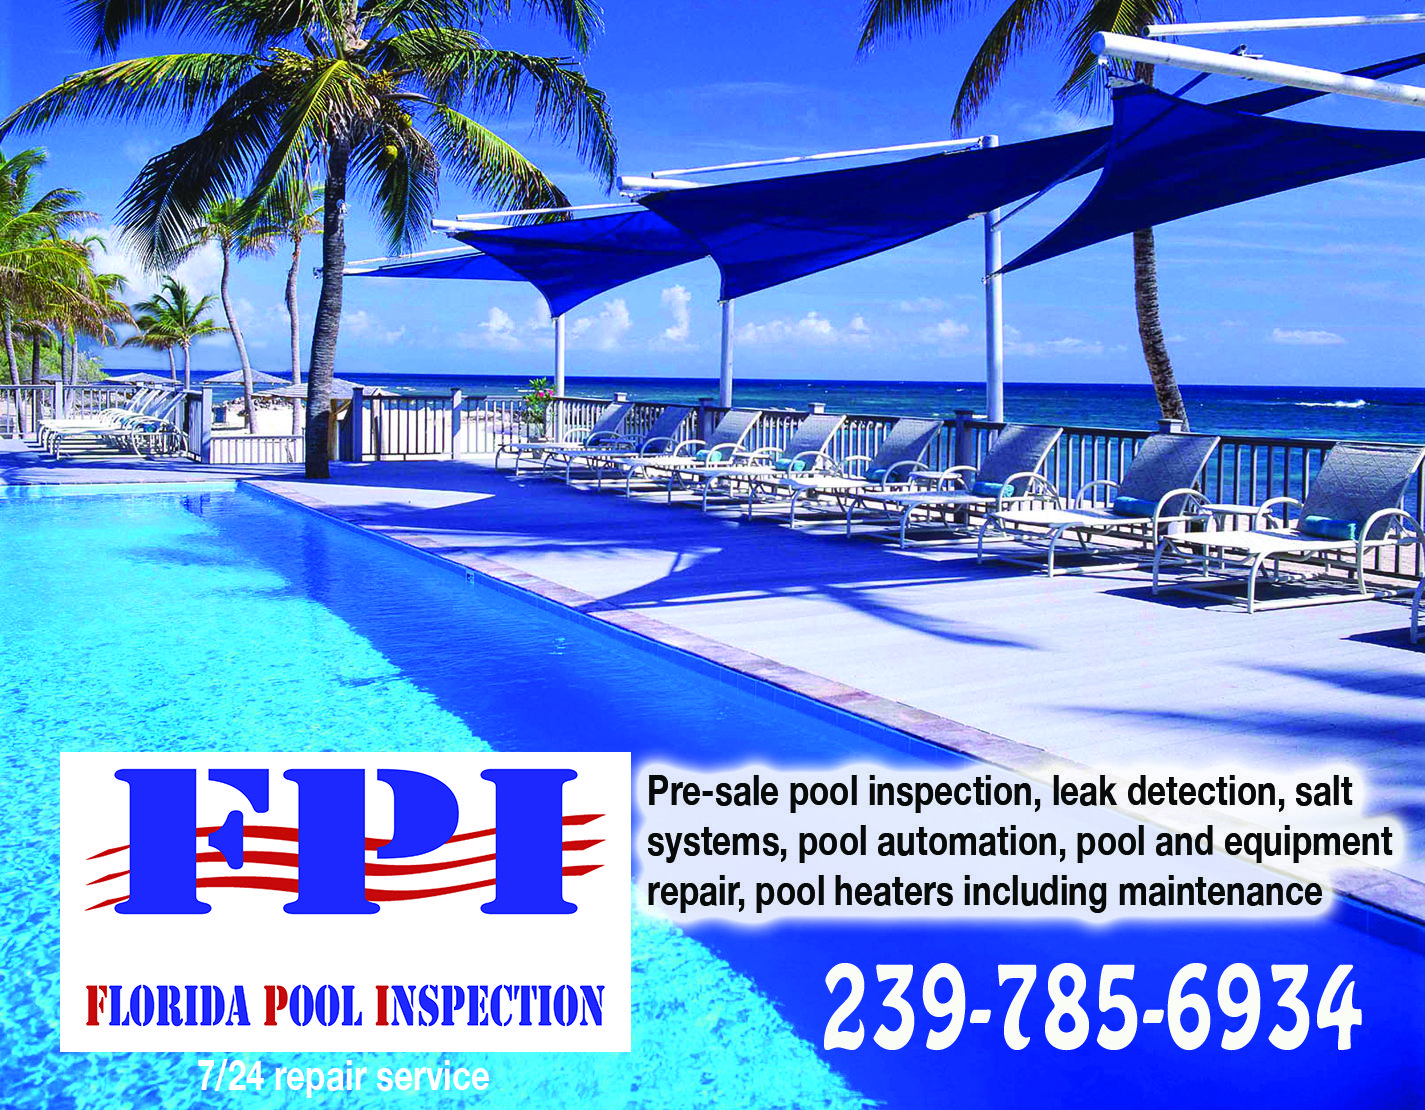 Need your pool inspected in the naples florida area